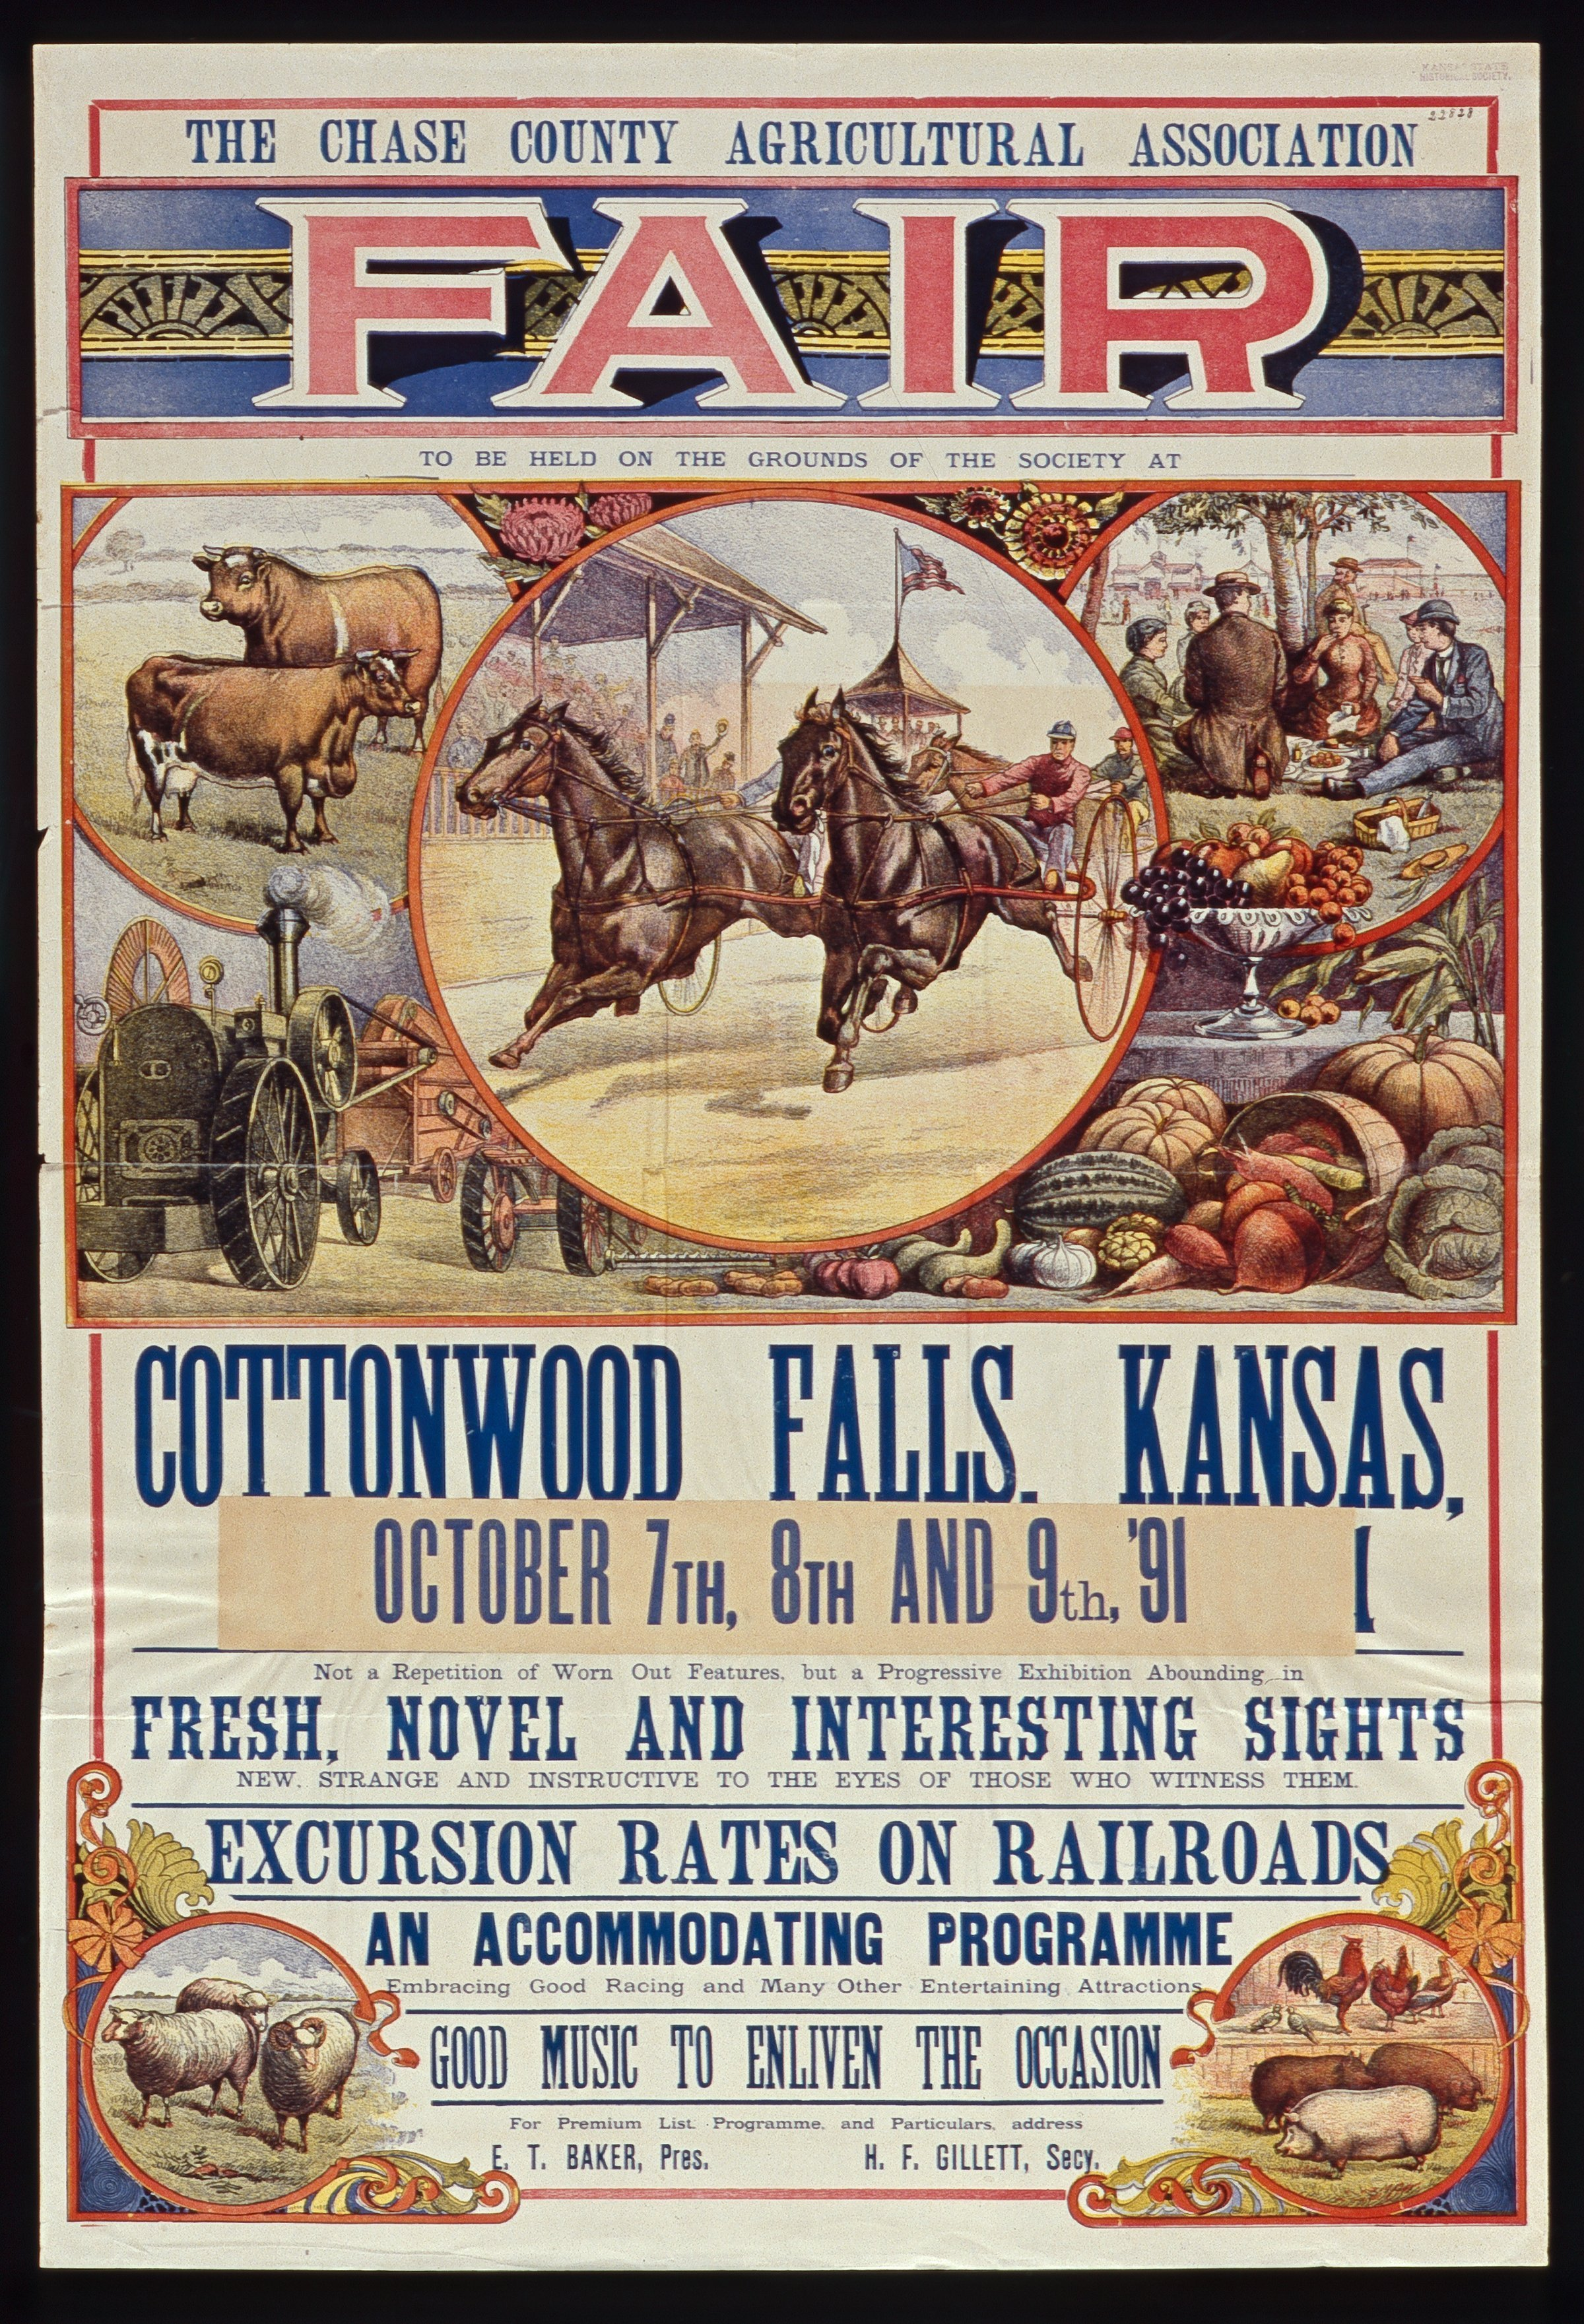 The Chase County Agricultural Association fair, Cottonwood Falls, Kansas